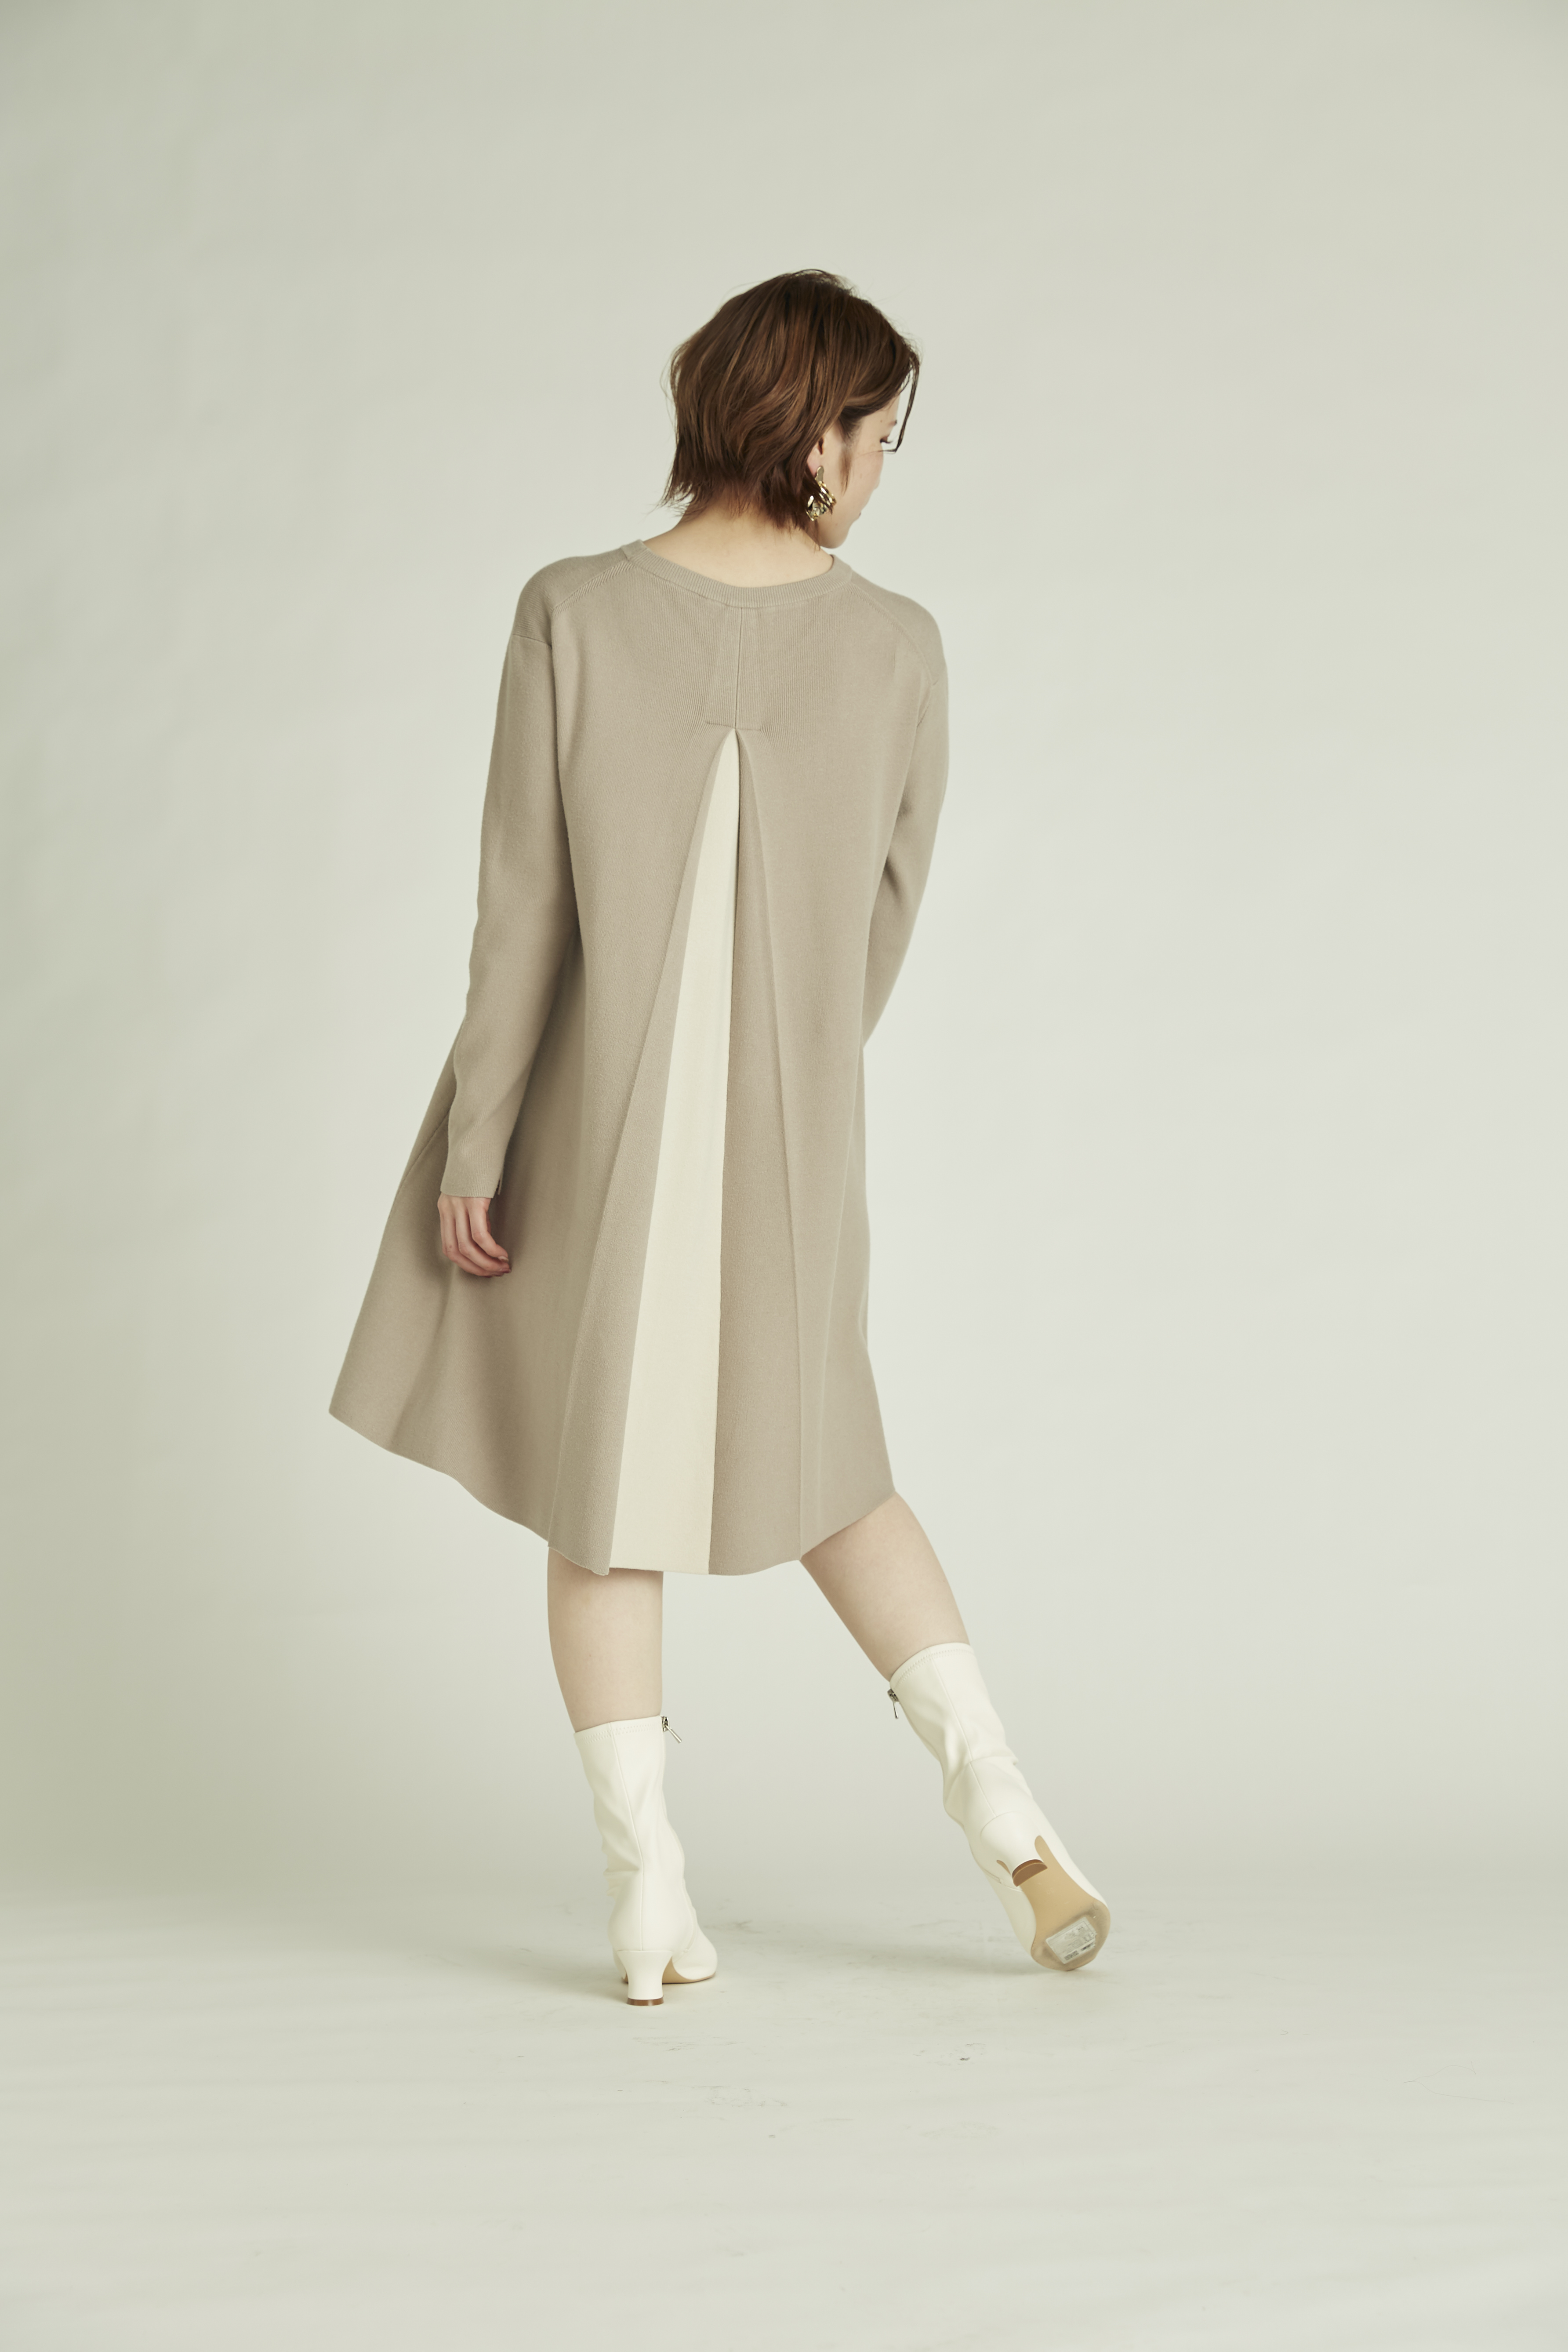 【NEW Year Special Knit Dress】バイカラーAラインニットワンピース(GBEG-36)